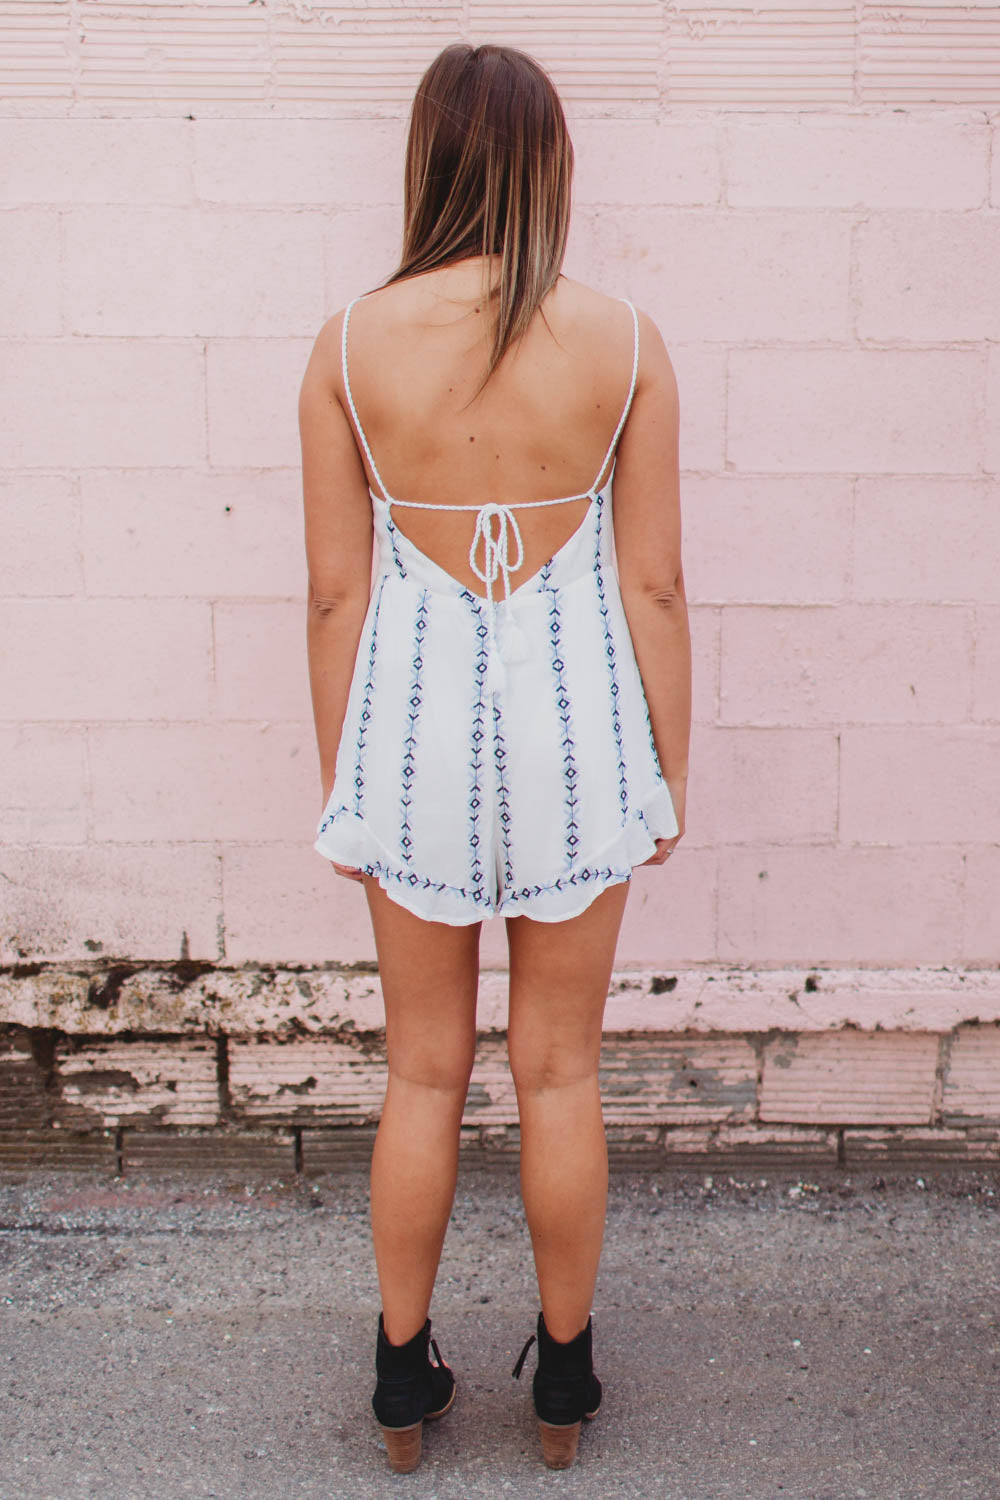 Romper - Embroidered romper with tie front and back